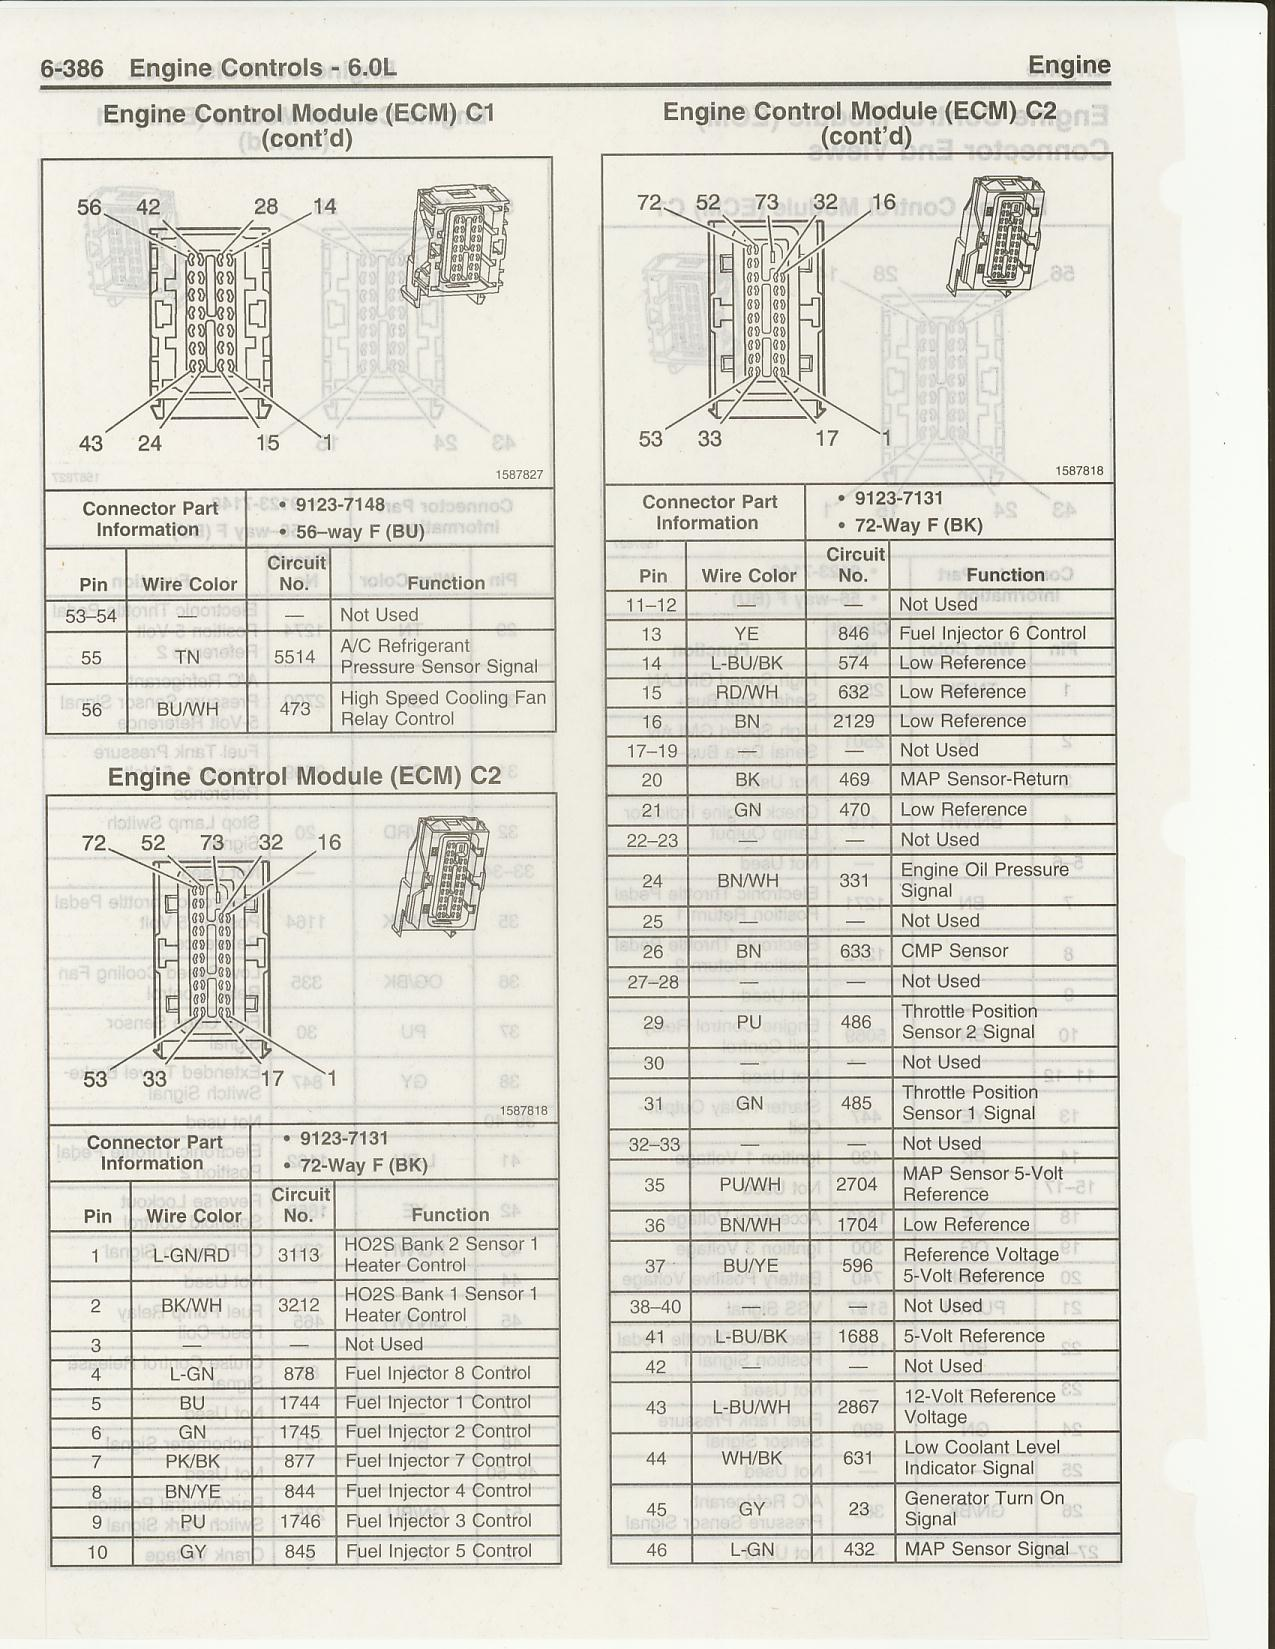 Pinouts And Wiring Diagrams Page 4 Ls1tech Camaro Firebird 2001 Chevy S10 Cluster Diagram Ls2 C1 C2